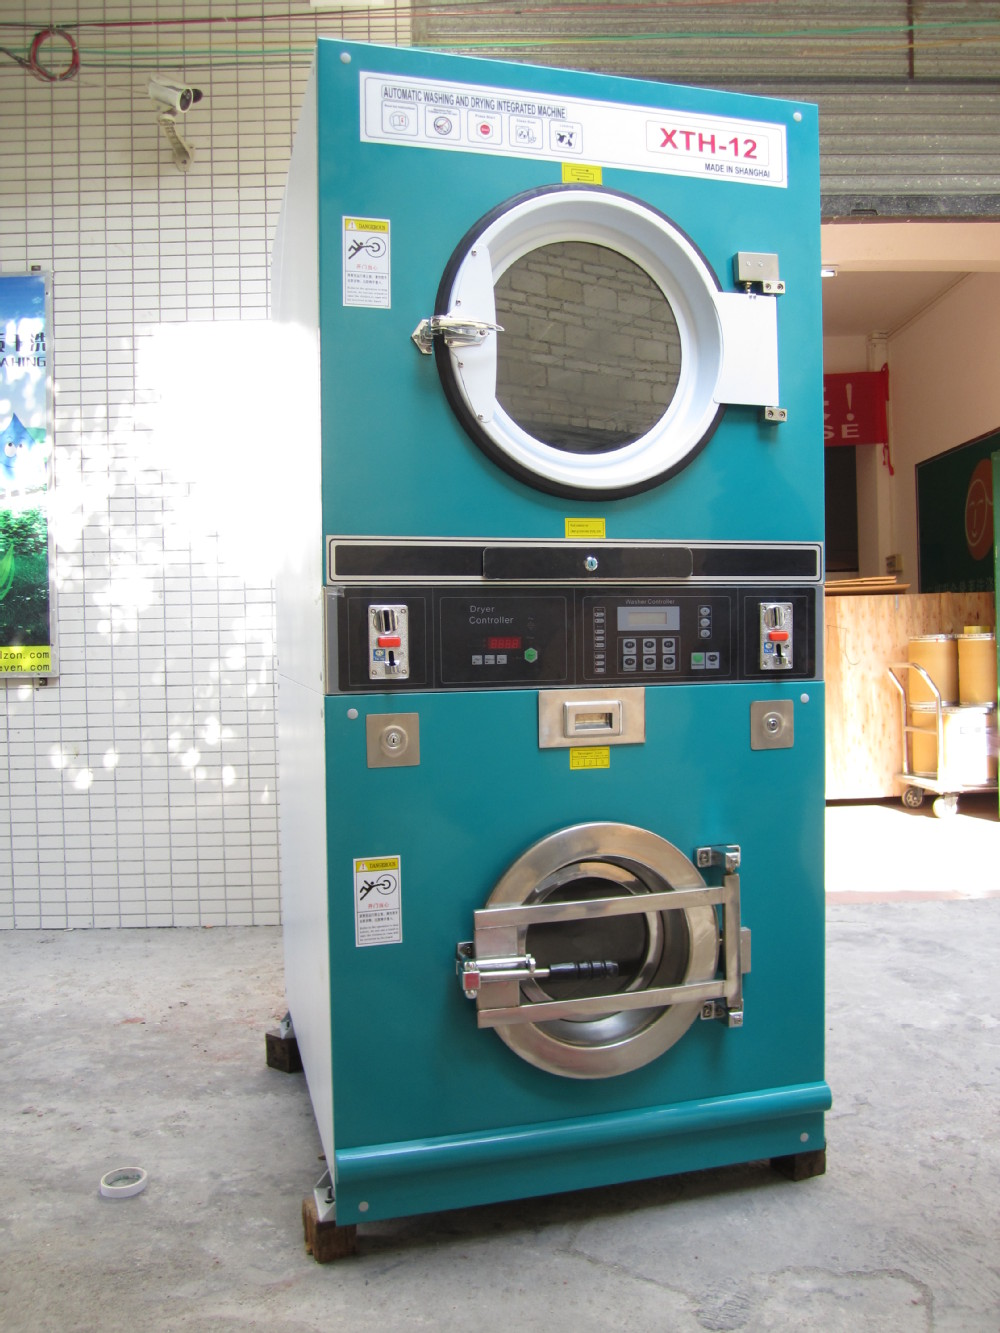 used coin operated washing machine